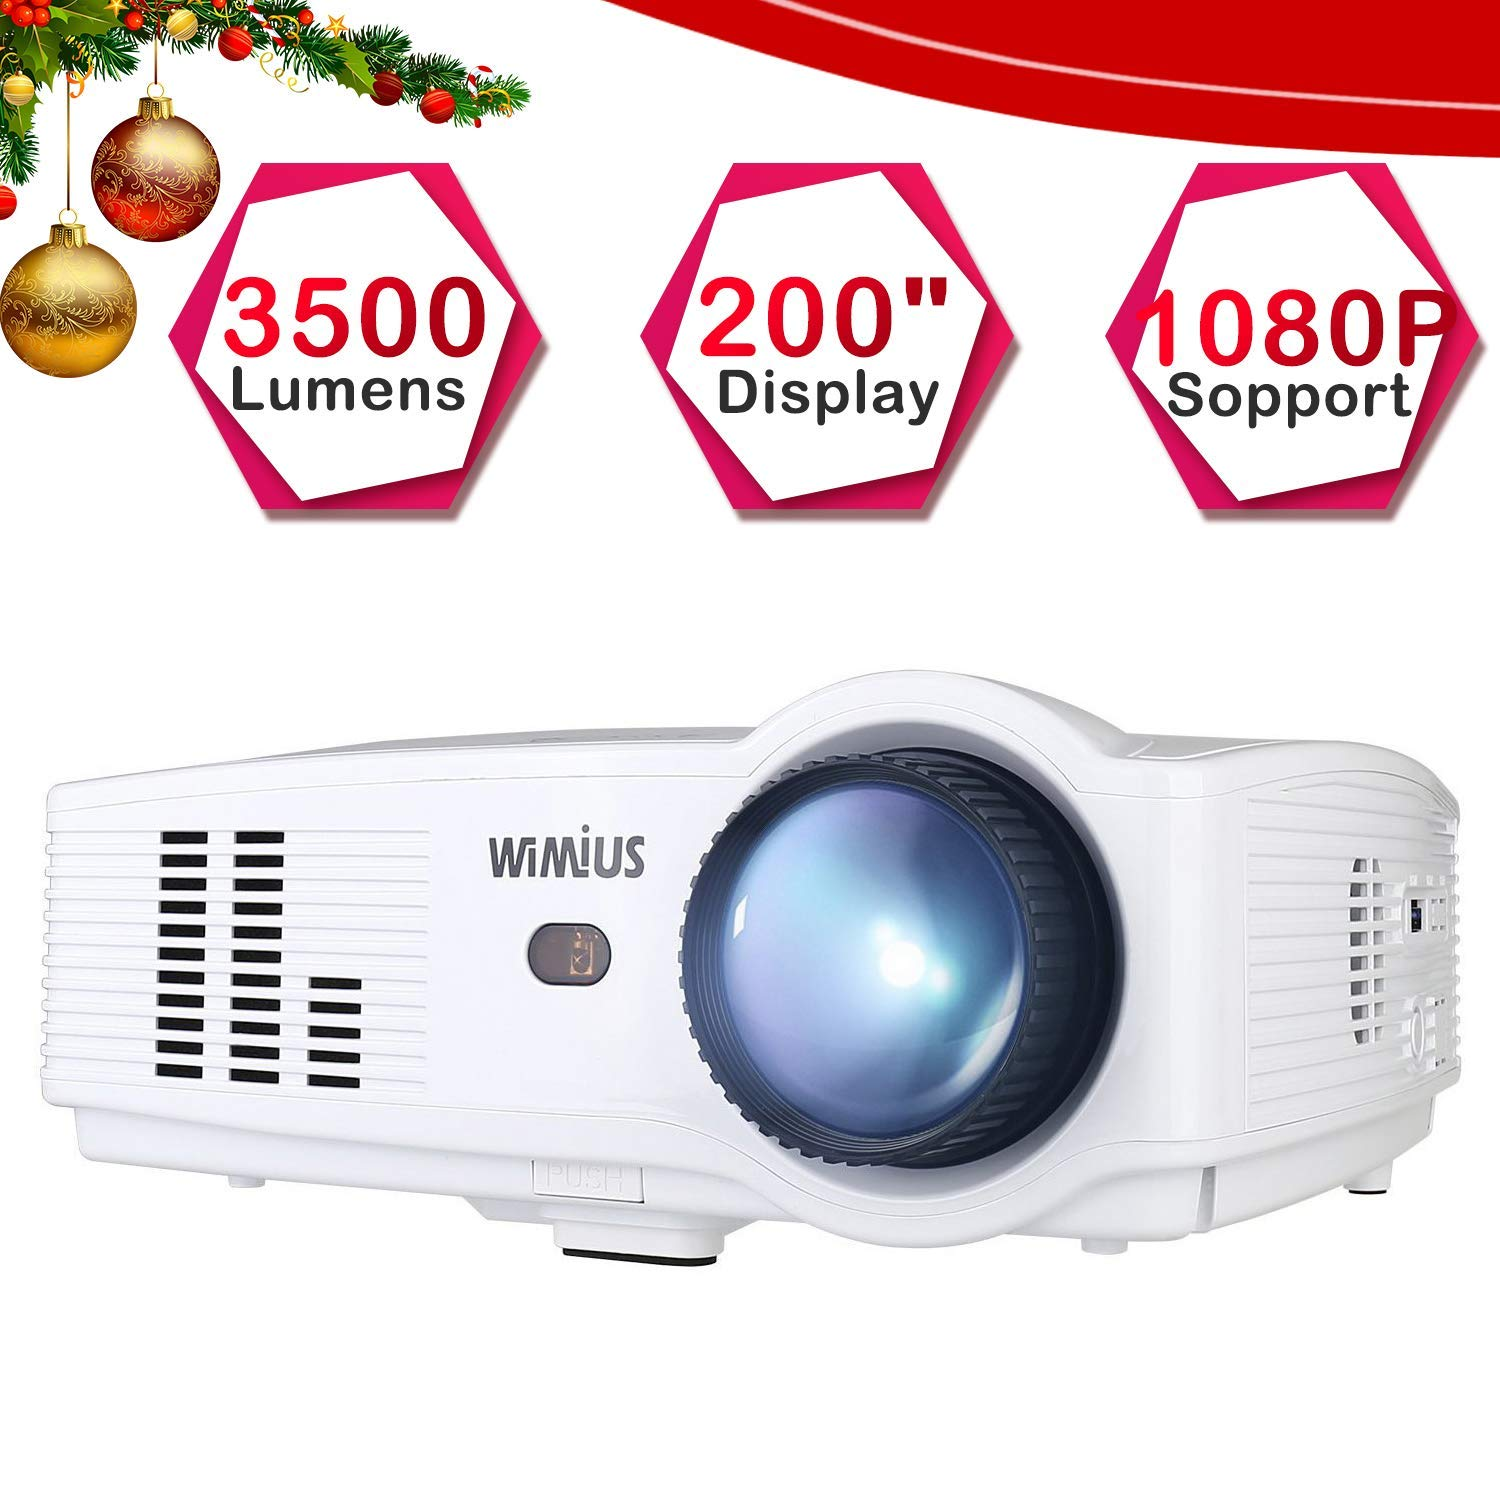 Proyector Full HD, Proyectores LED 3500 Lúmenes 1080P Proyector Video Portátil WiMiUS T4 Projector LCD Home Cinema Apoyo 1920*1080 HDMI VGA USB SD ...